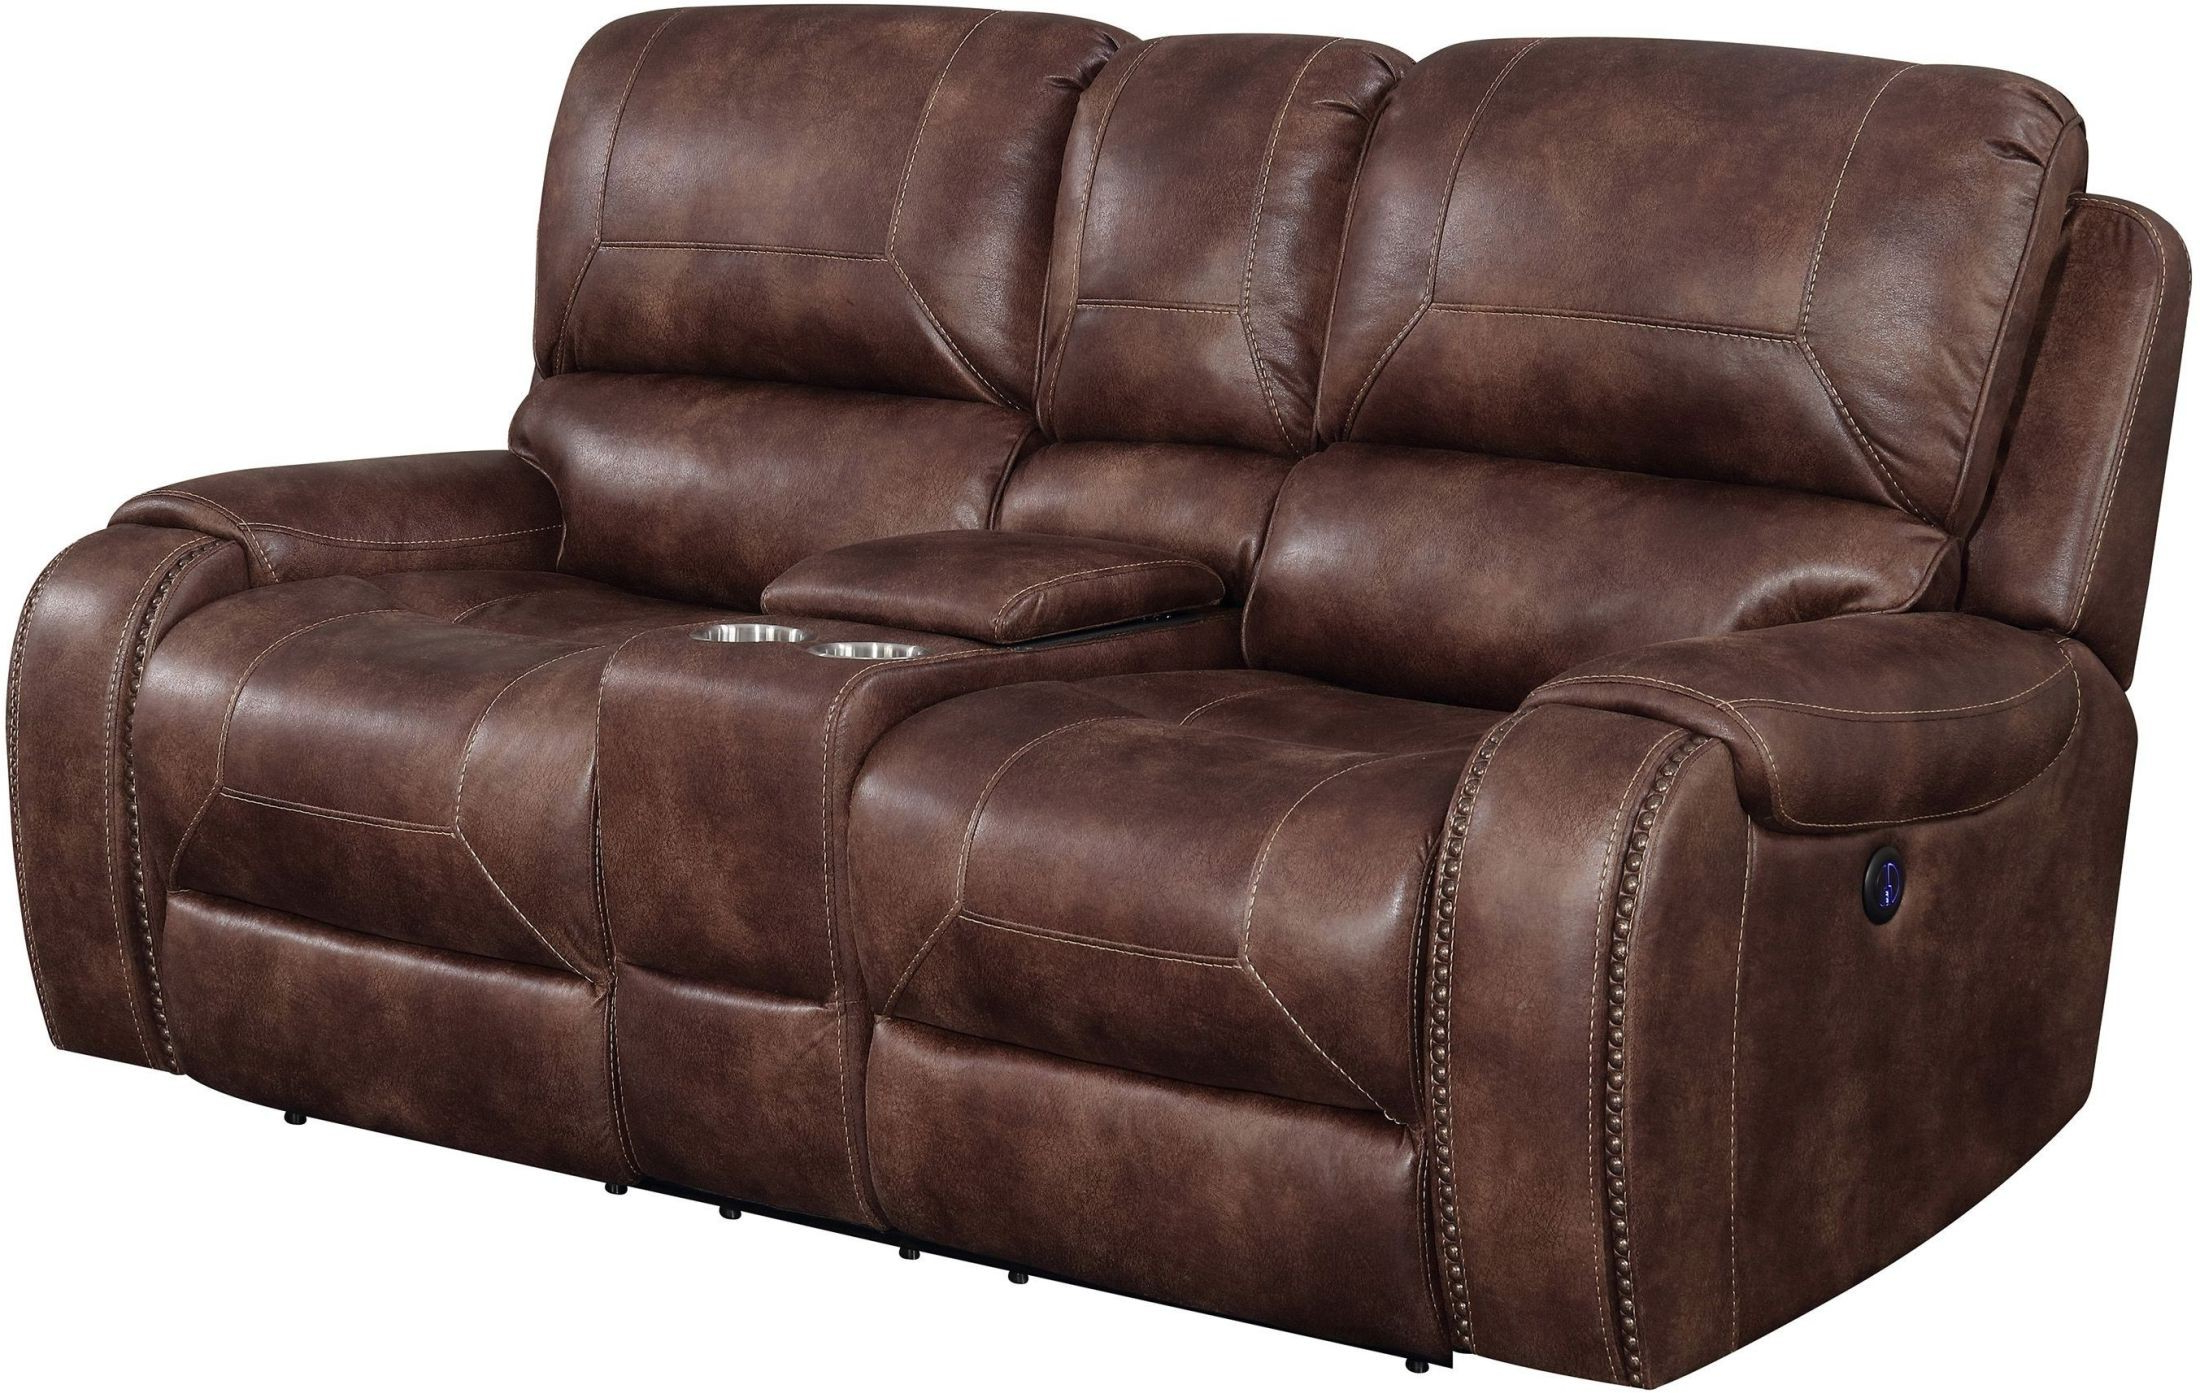 Jennings Waylon Mocha Power Reclining Console Loveseat From Prime With Most Current Waylon 3 Piece Power Reclining Sectionals (Gallery 19 of 20)